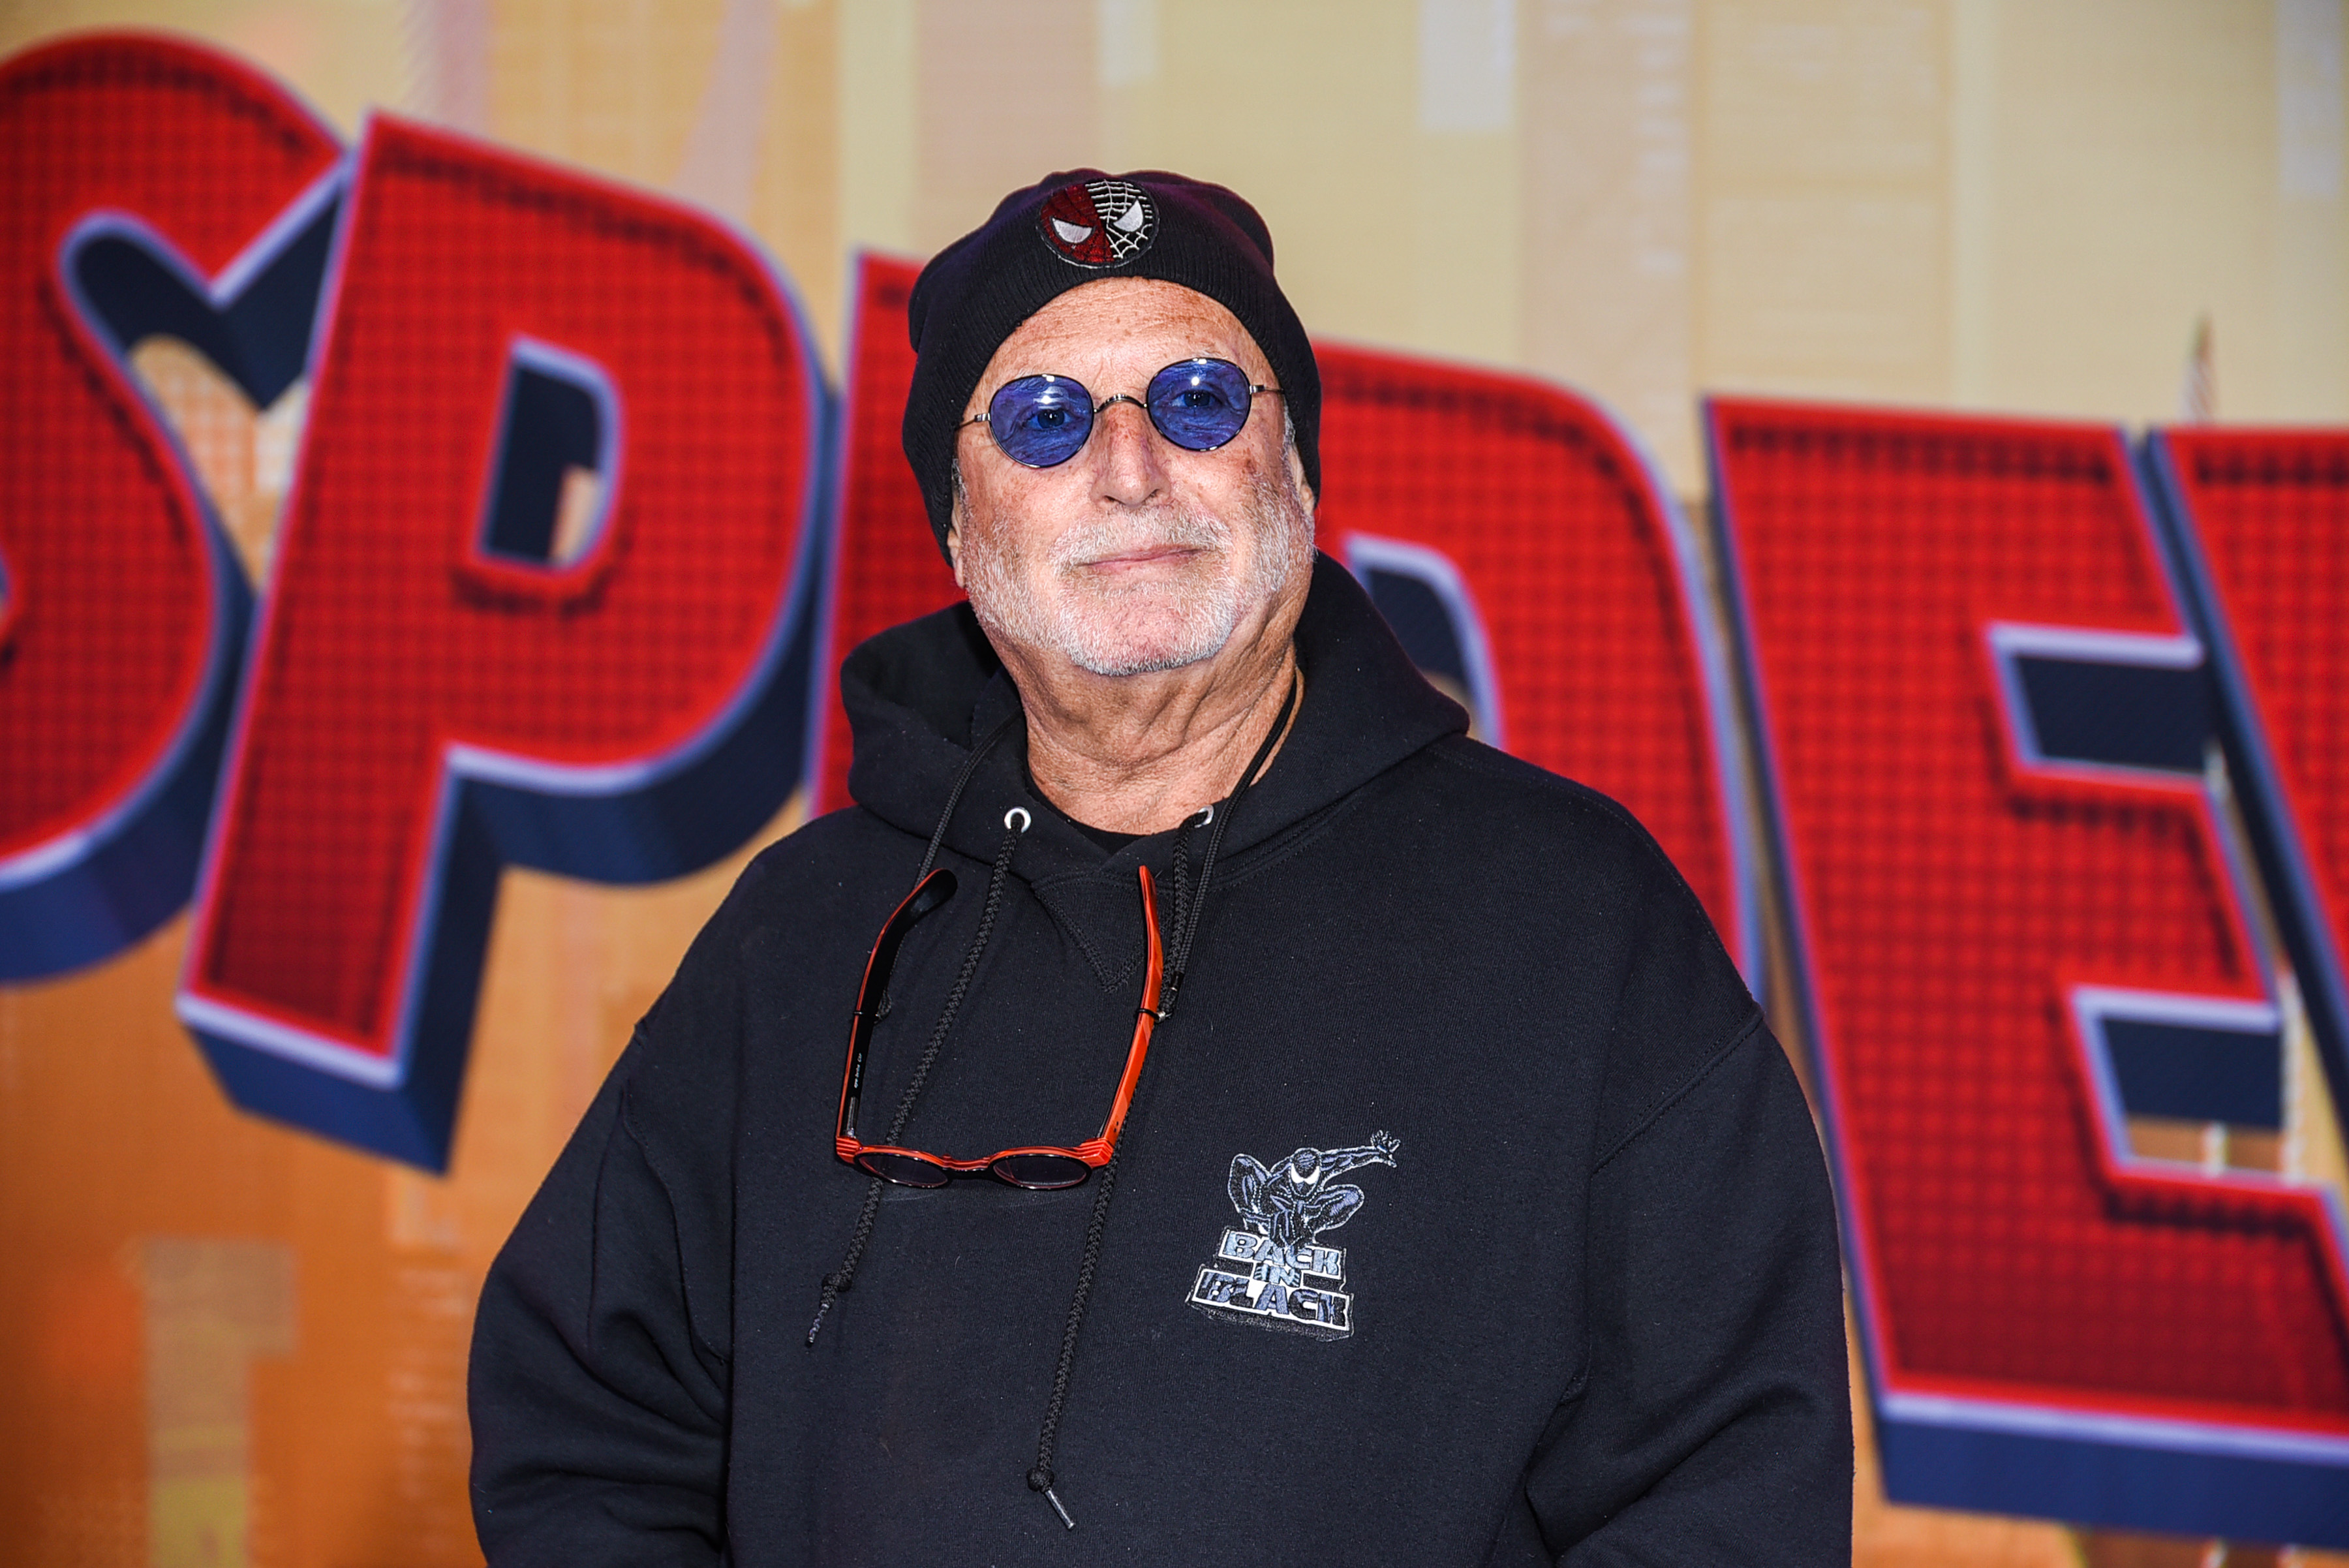 Why Spider-Man Fans Hate Avi Arad Amid 'No Way Home' Rumors